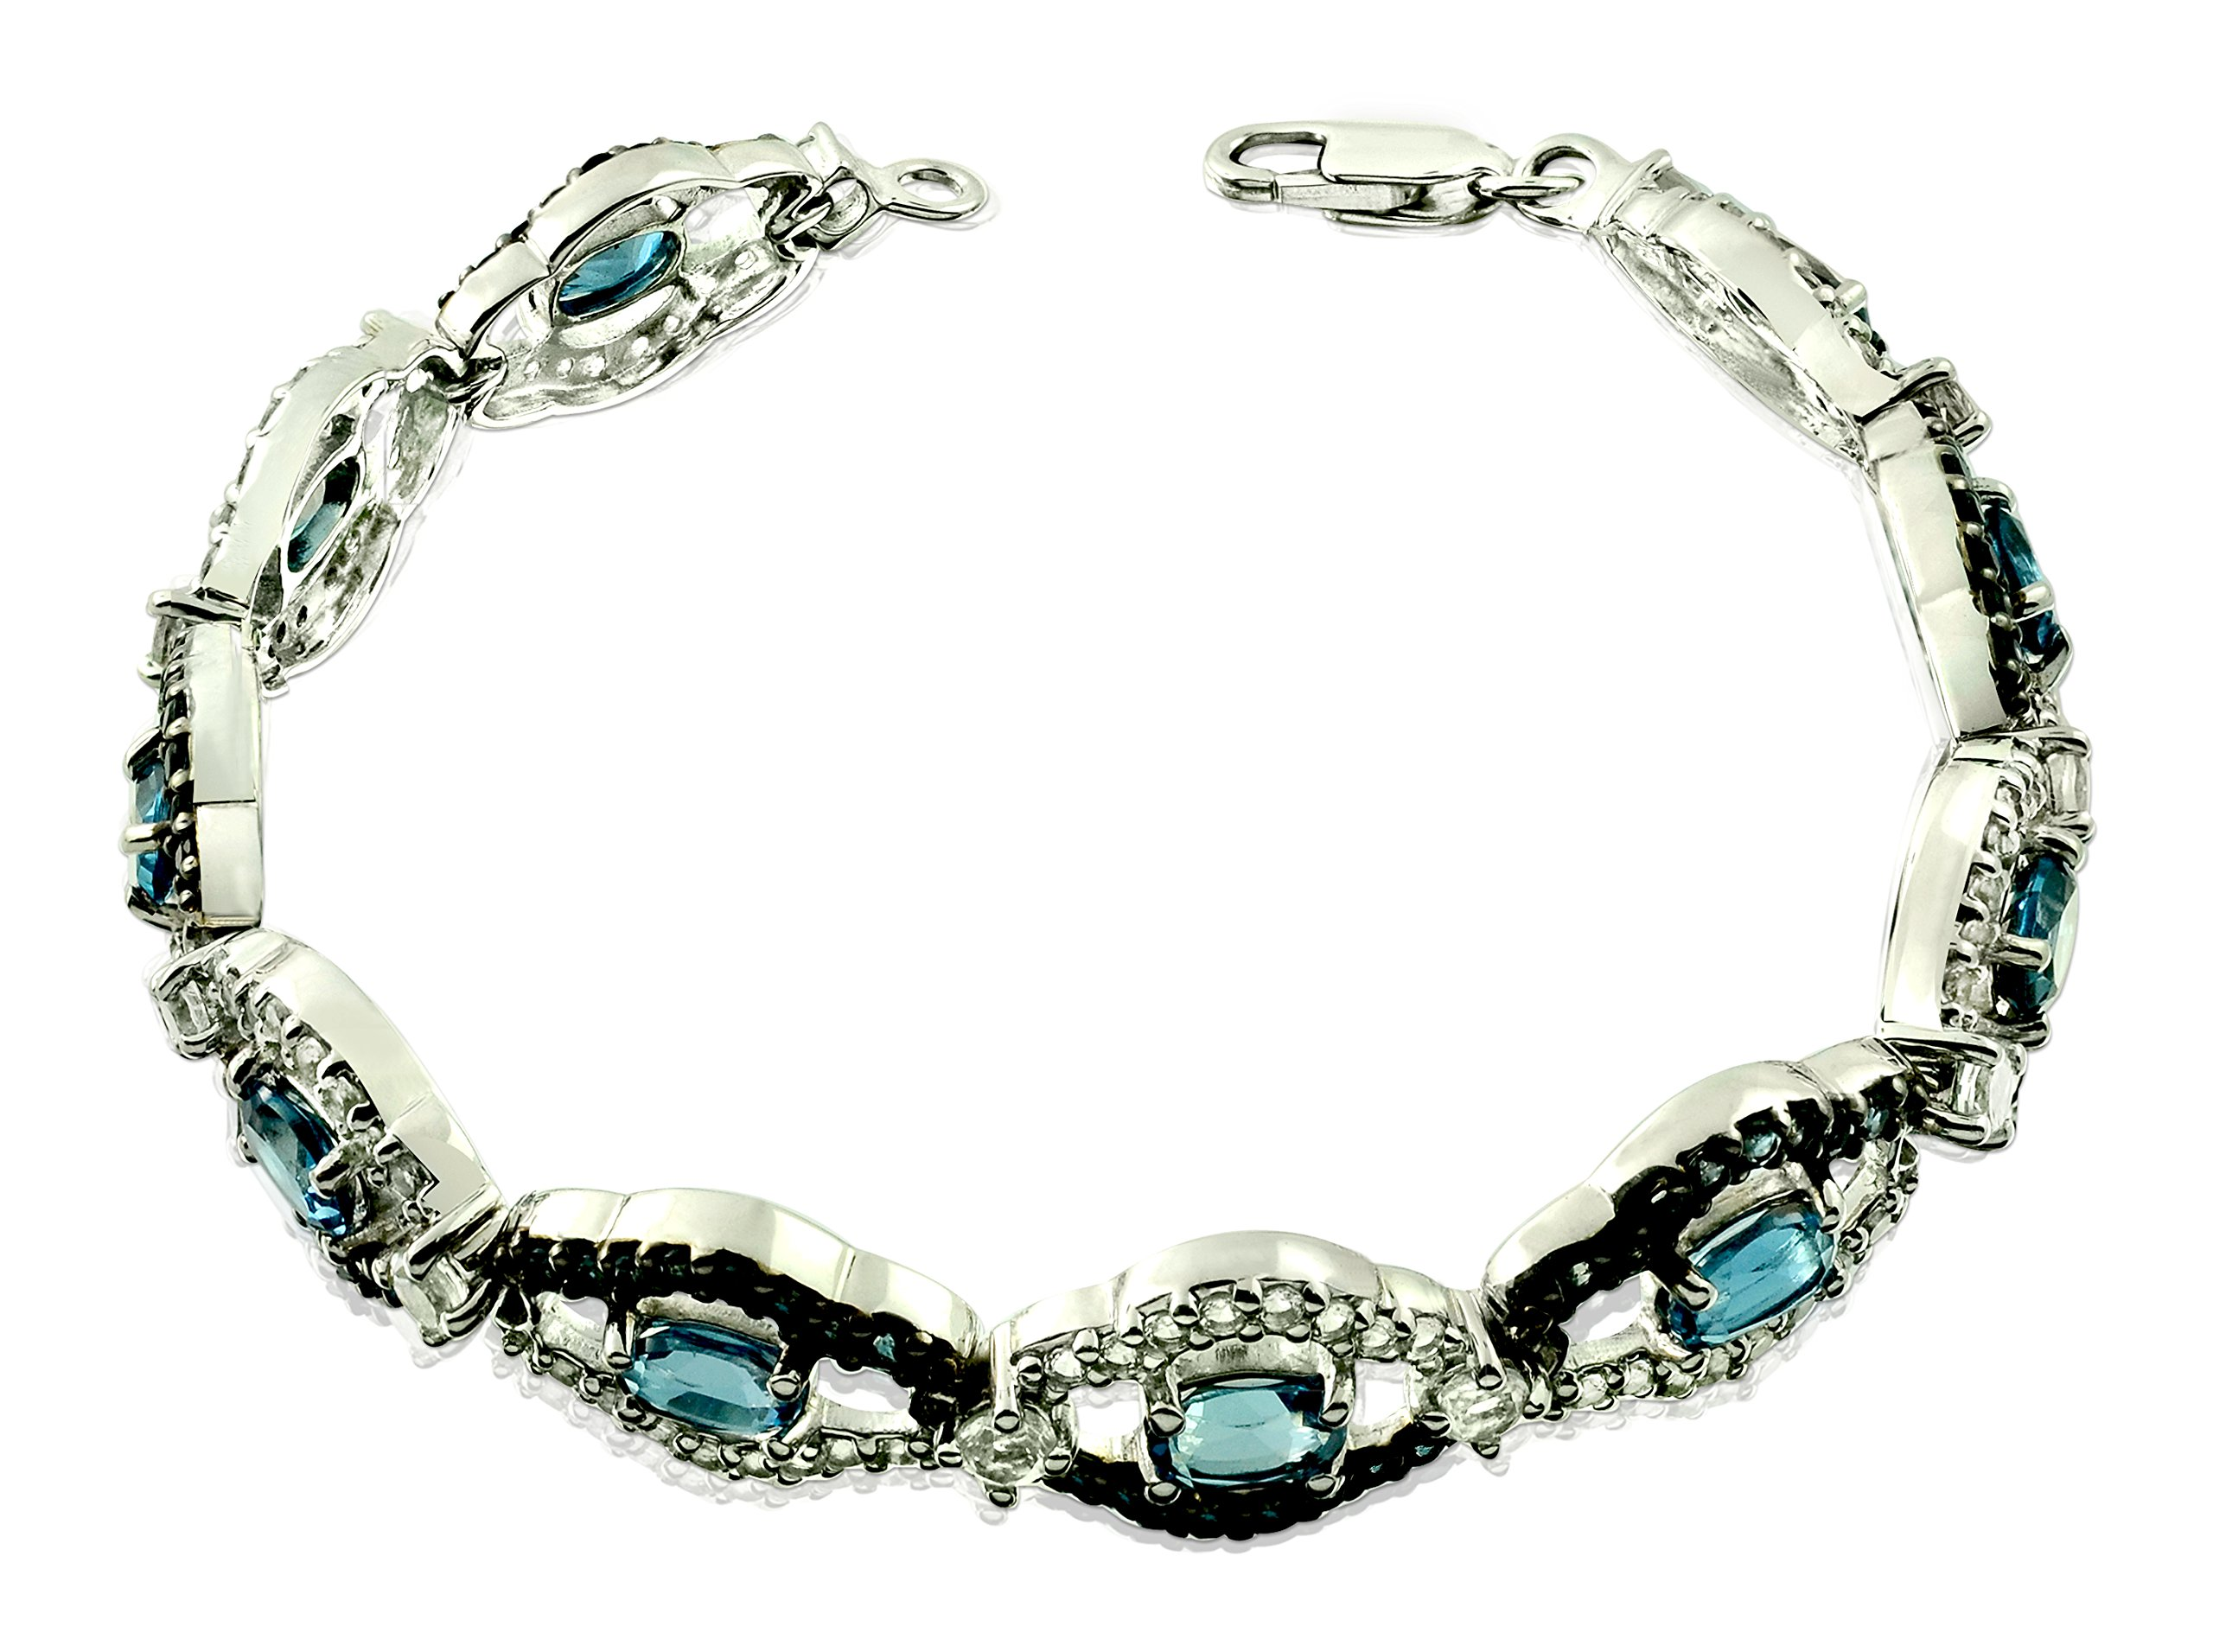 10 Carats Natural Gemstone Tennis Bracelet 10-Stone Style Oval Shape, 7-inch-long with Lobster Claw Clasp (Blue) by RB Gems